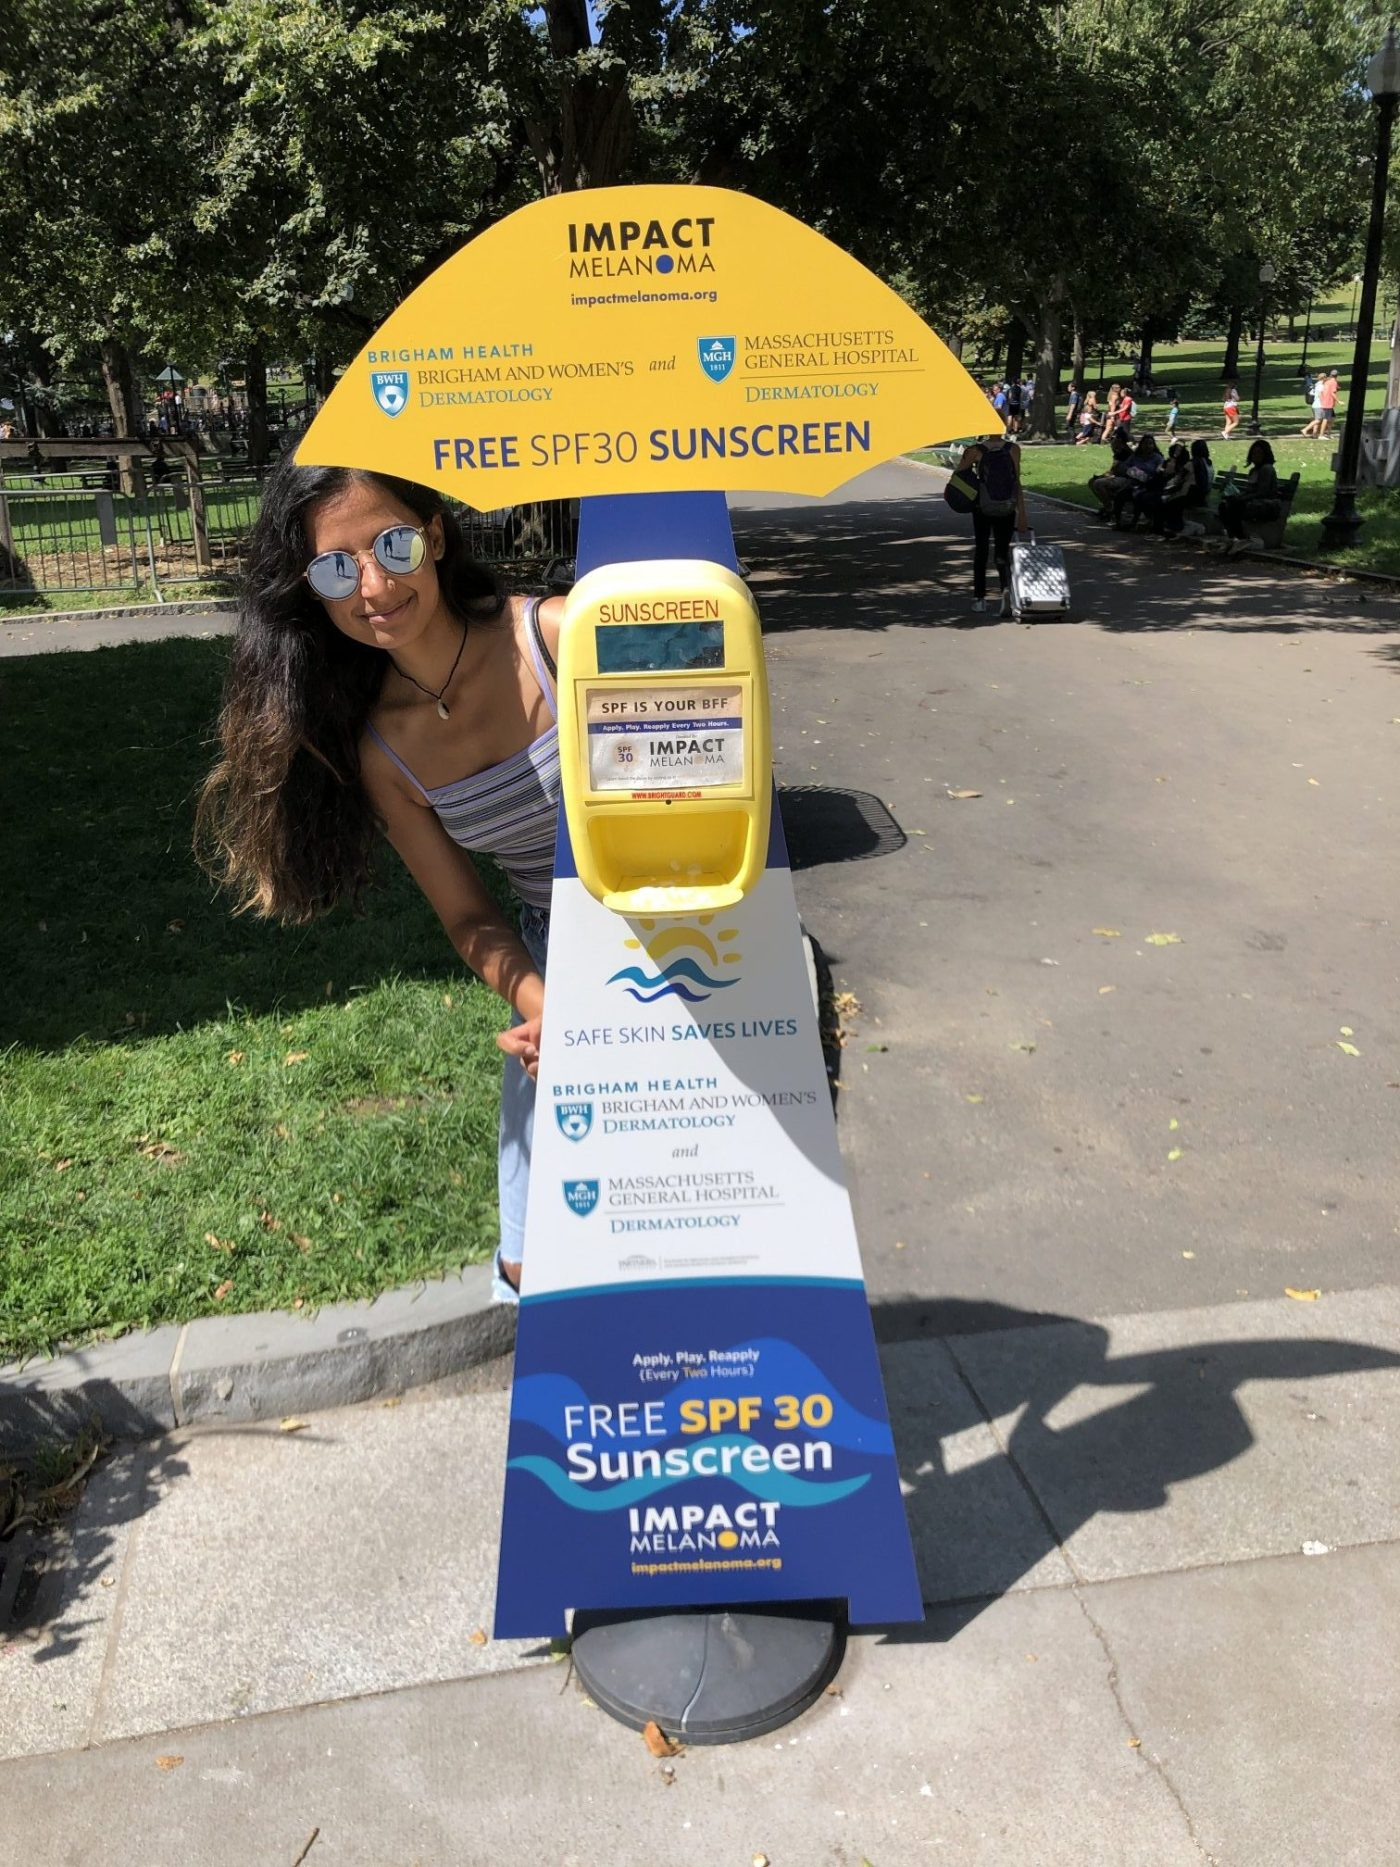 Friend poses with the sunscreen station